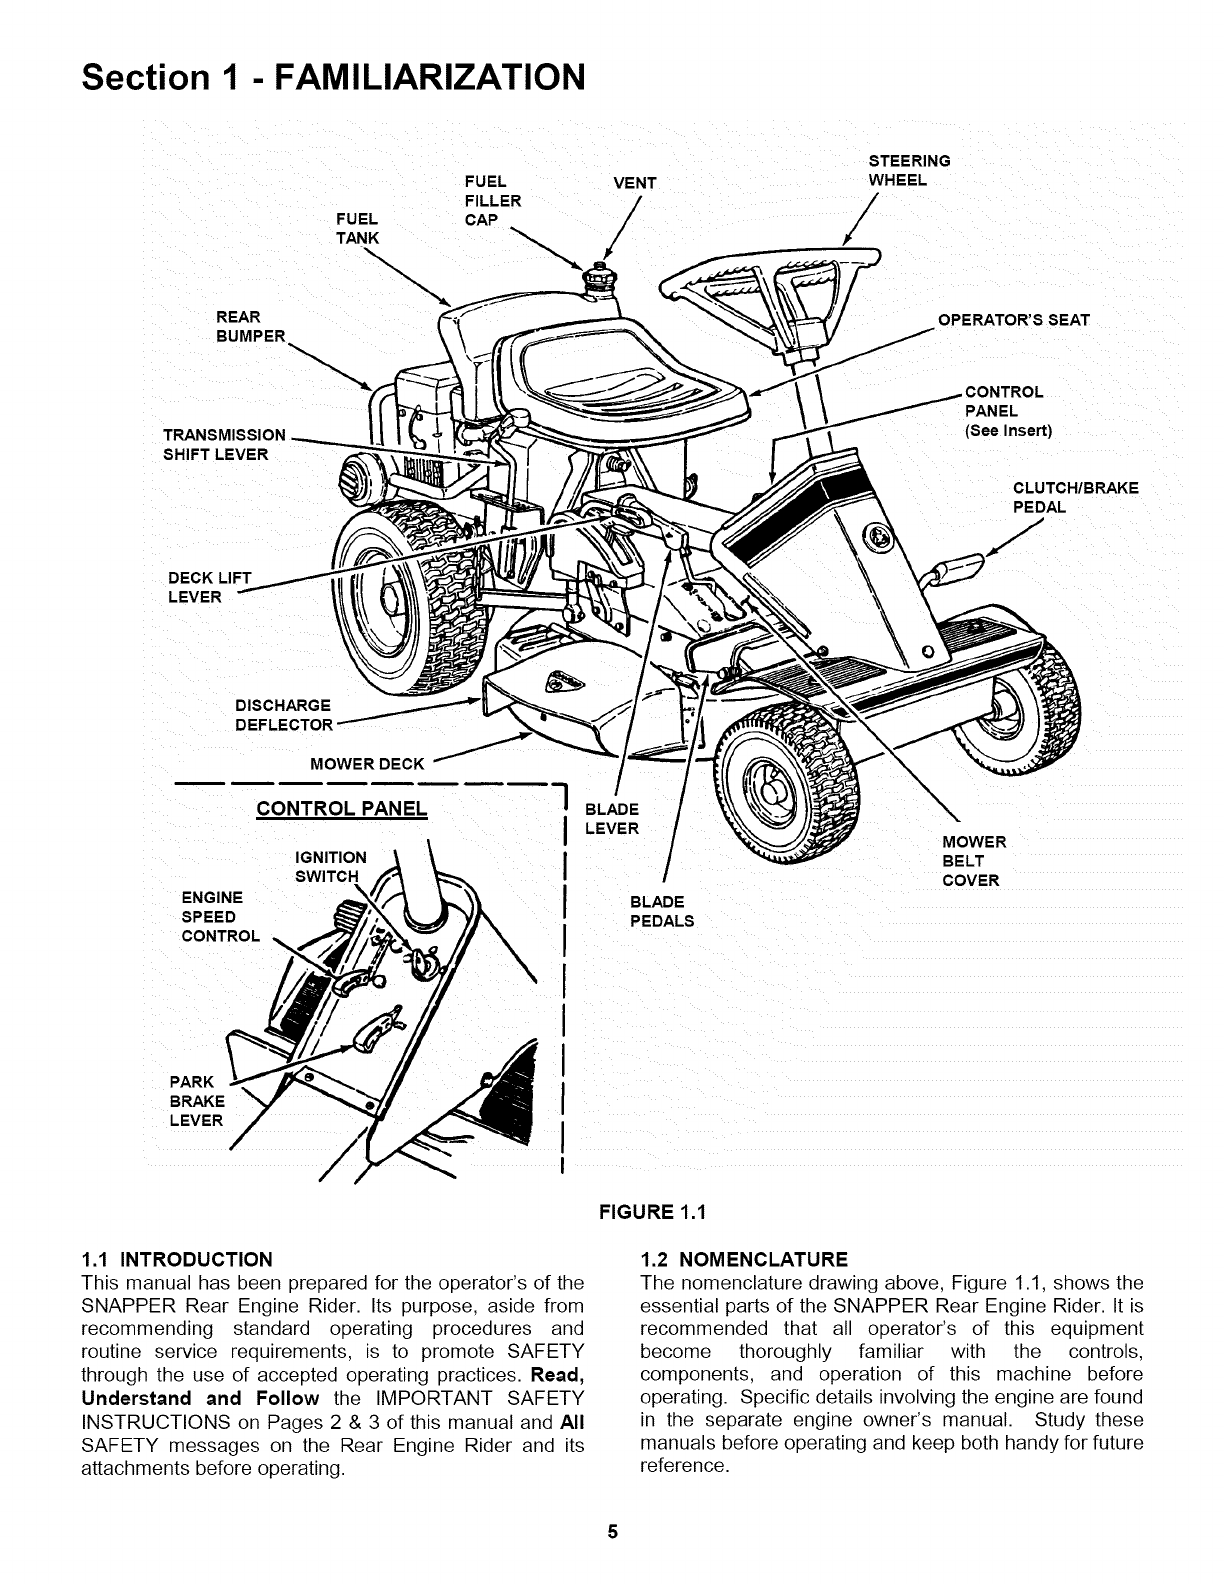 Snapper 281318BE User Manual REAR ENGINE RIDER Manuals And